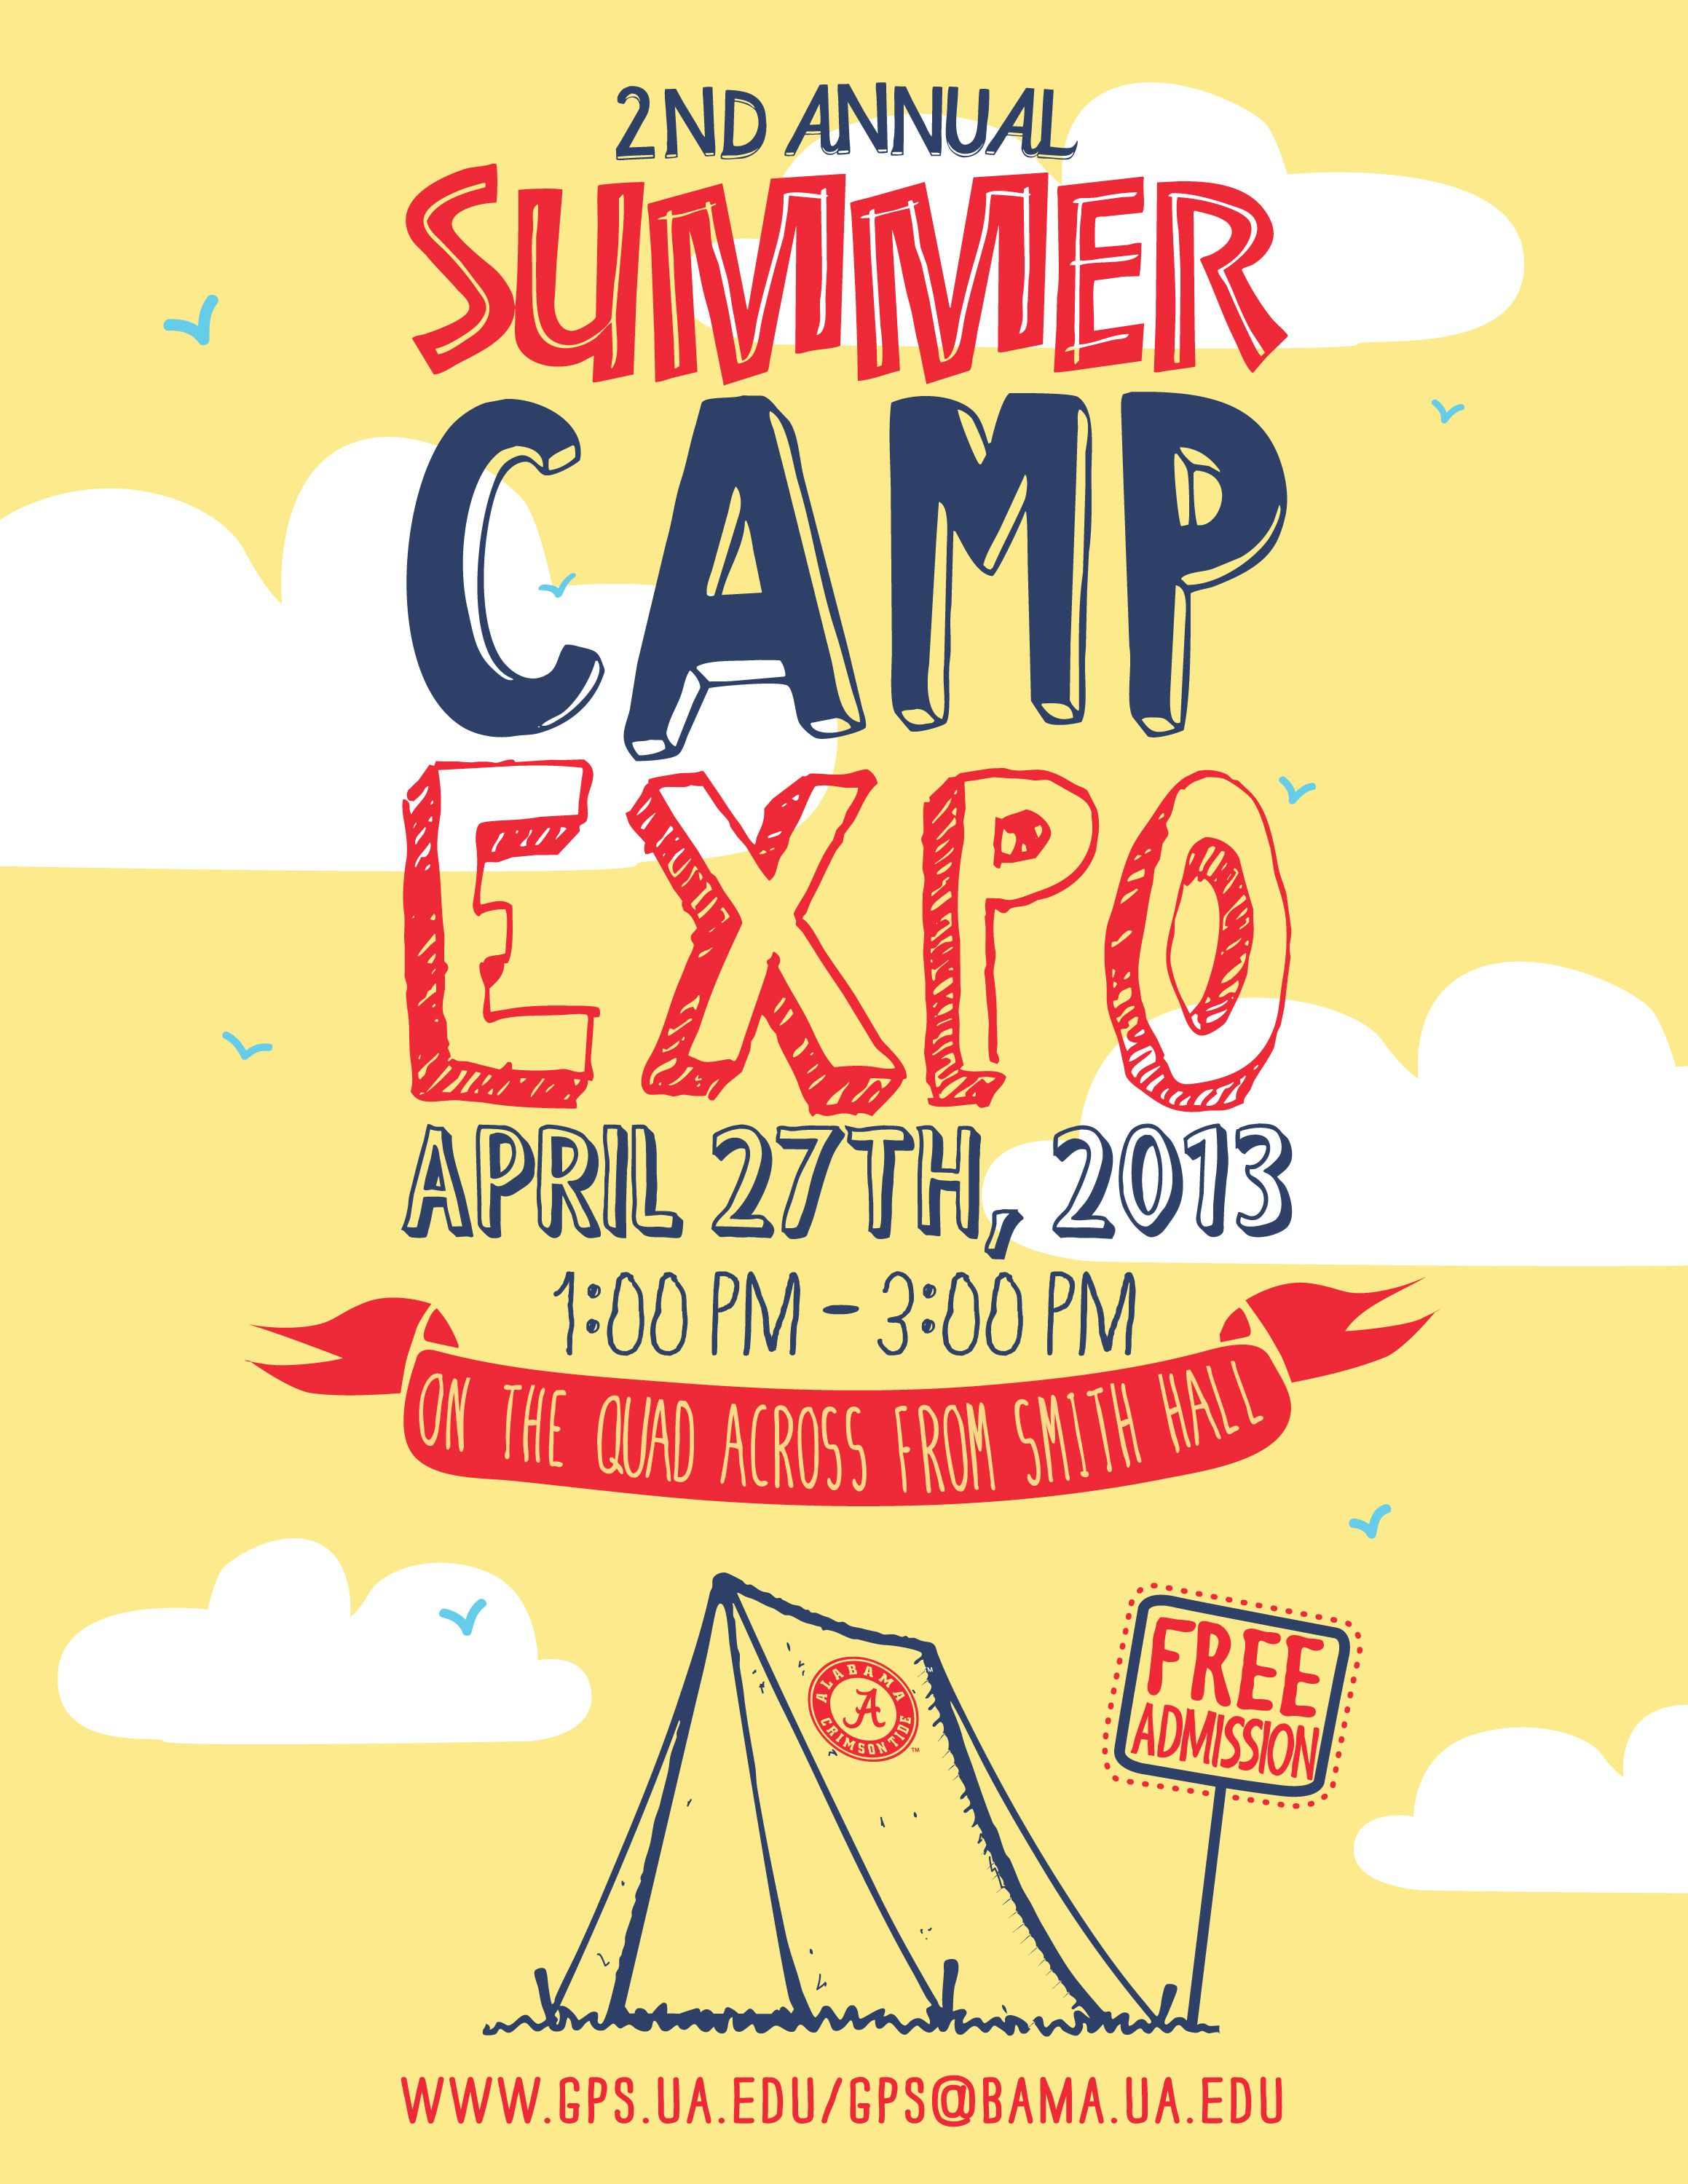 Awesome Summer Camp Flyer | flyer | Pinterest | Camping and Summer